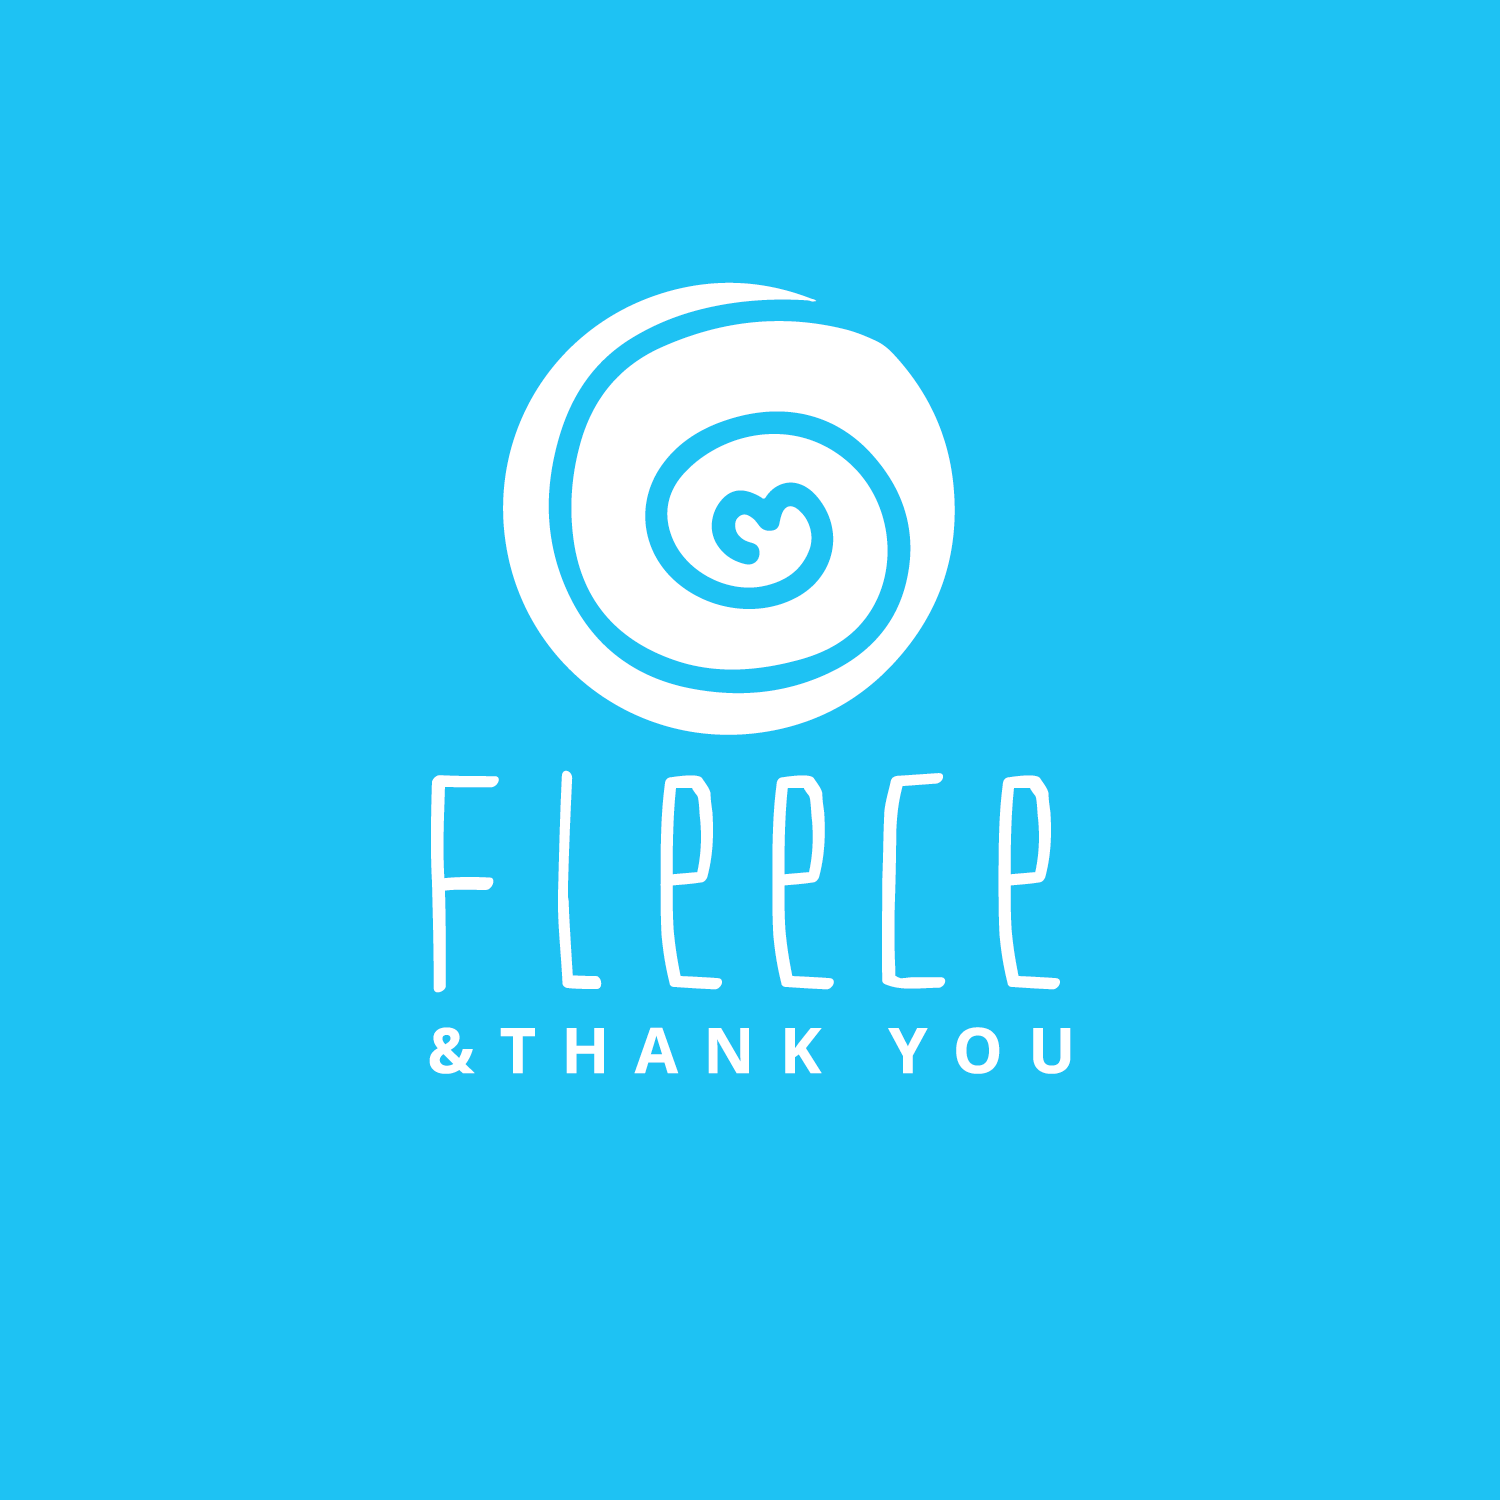 FLEECE & THANK YOU's Photo